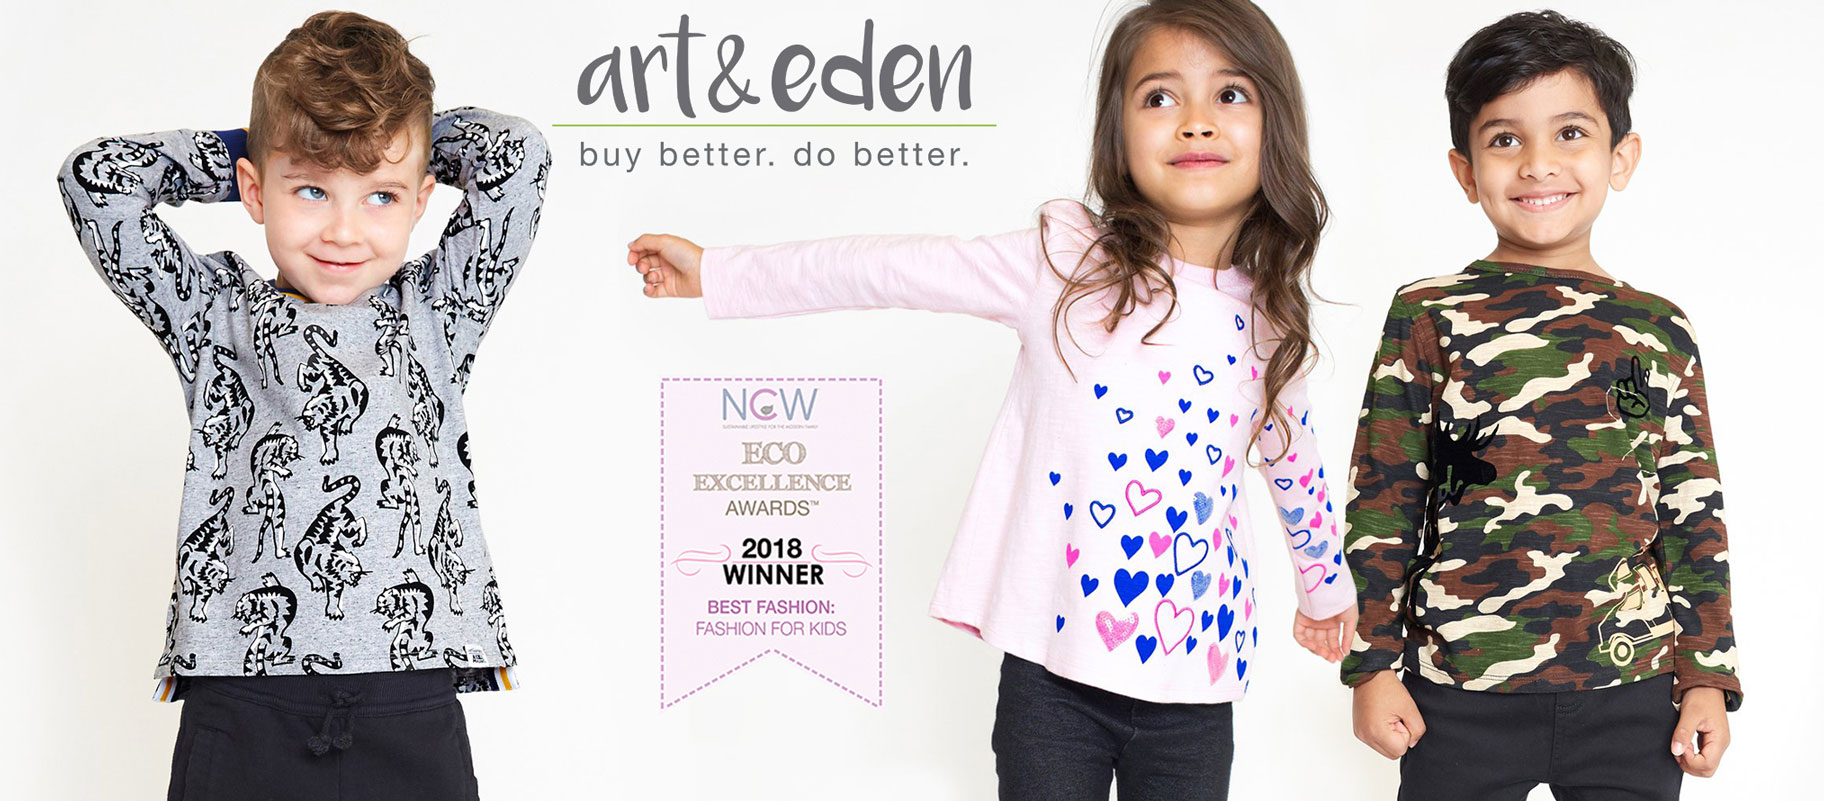 Art and Eden